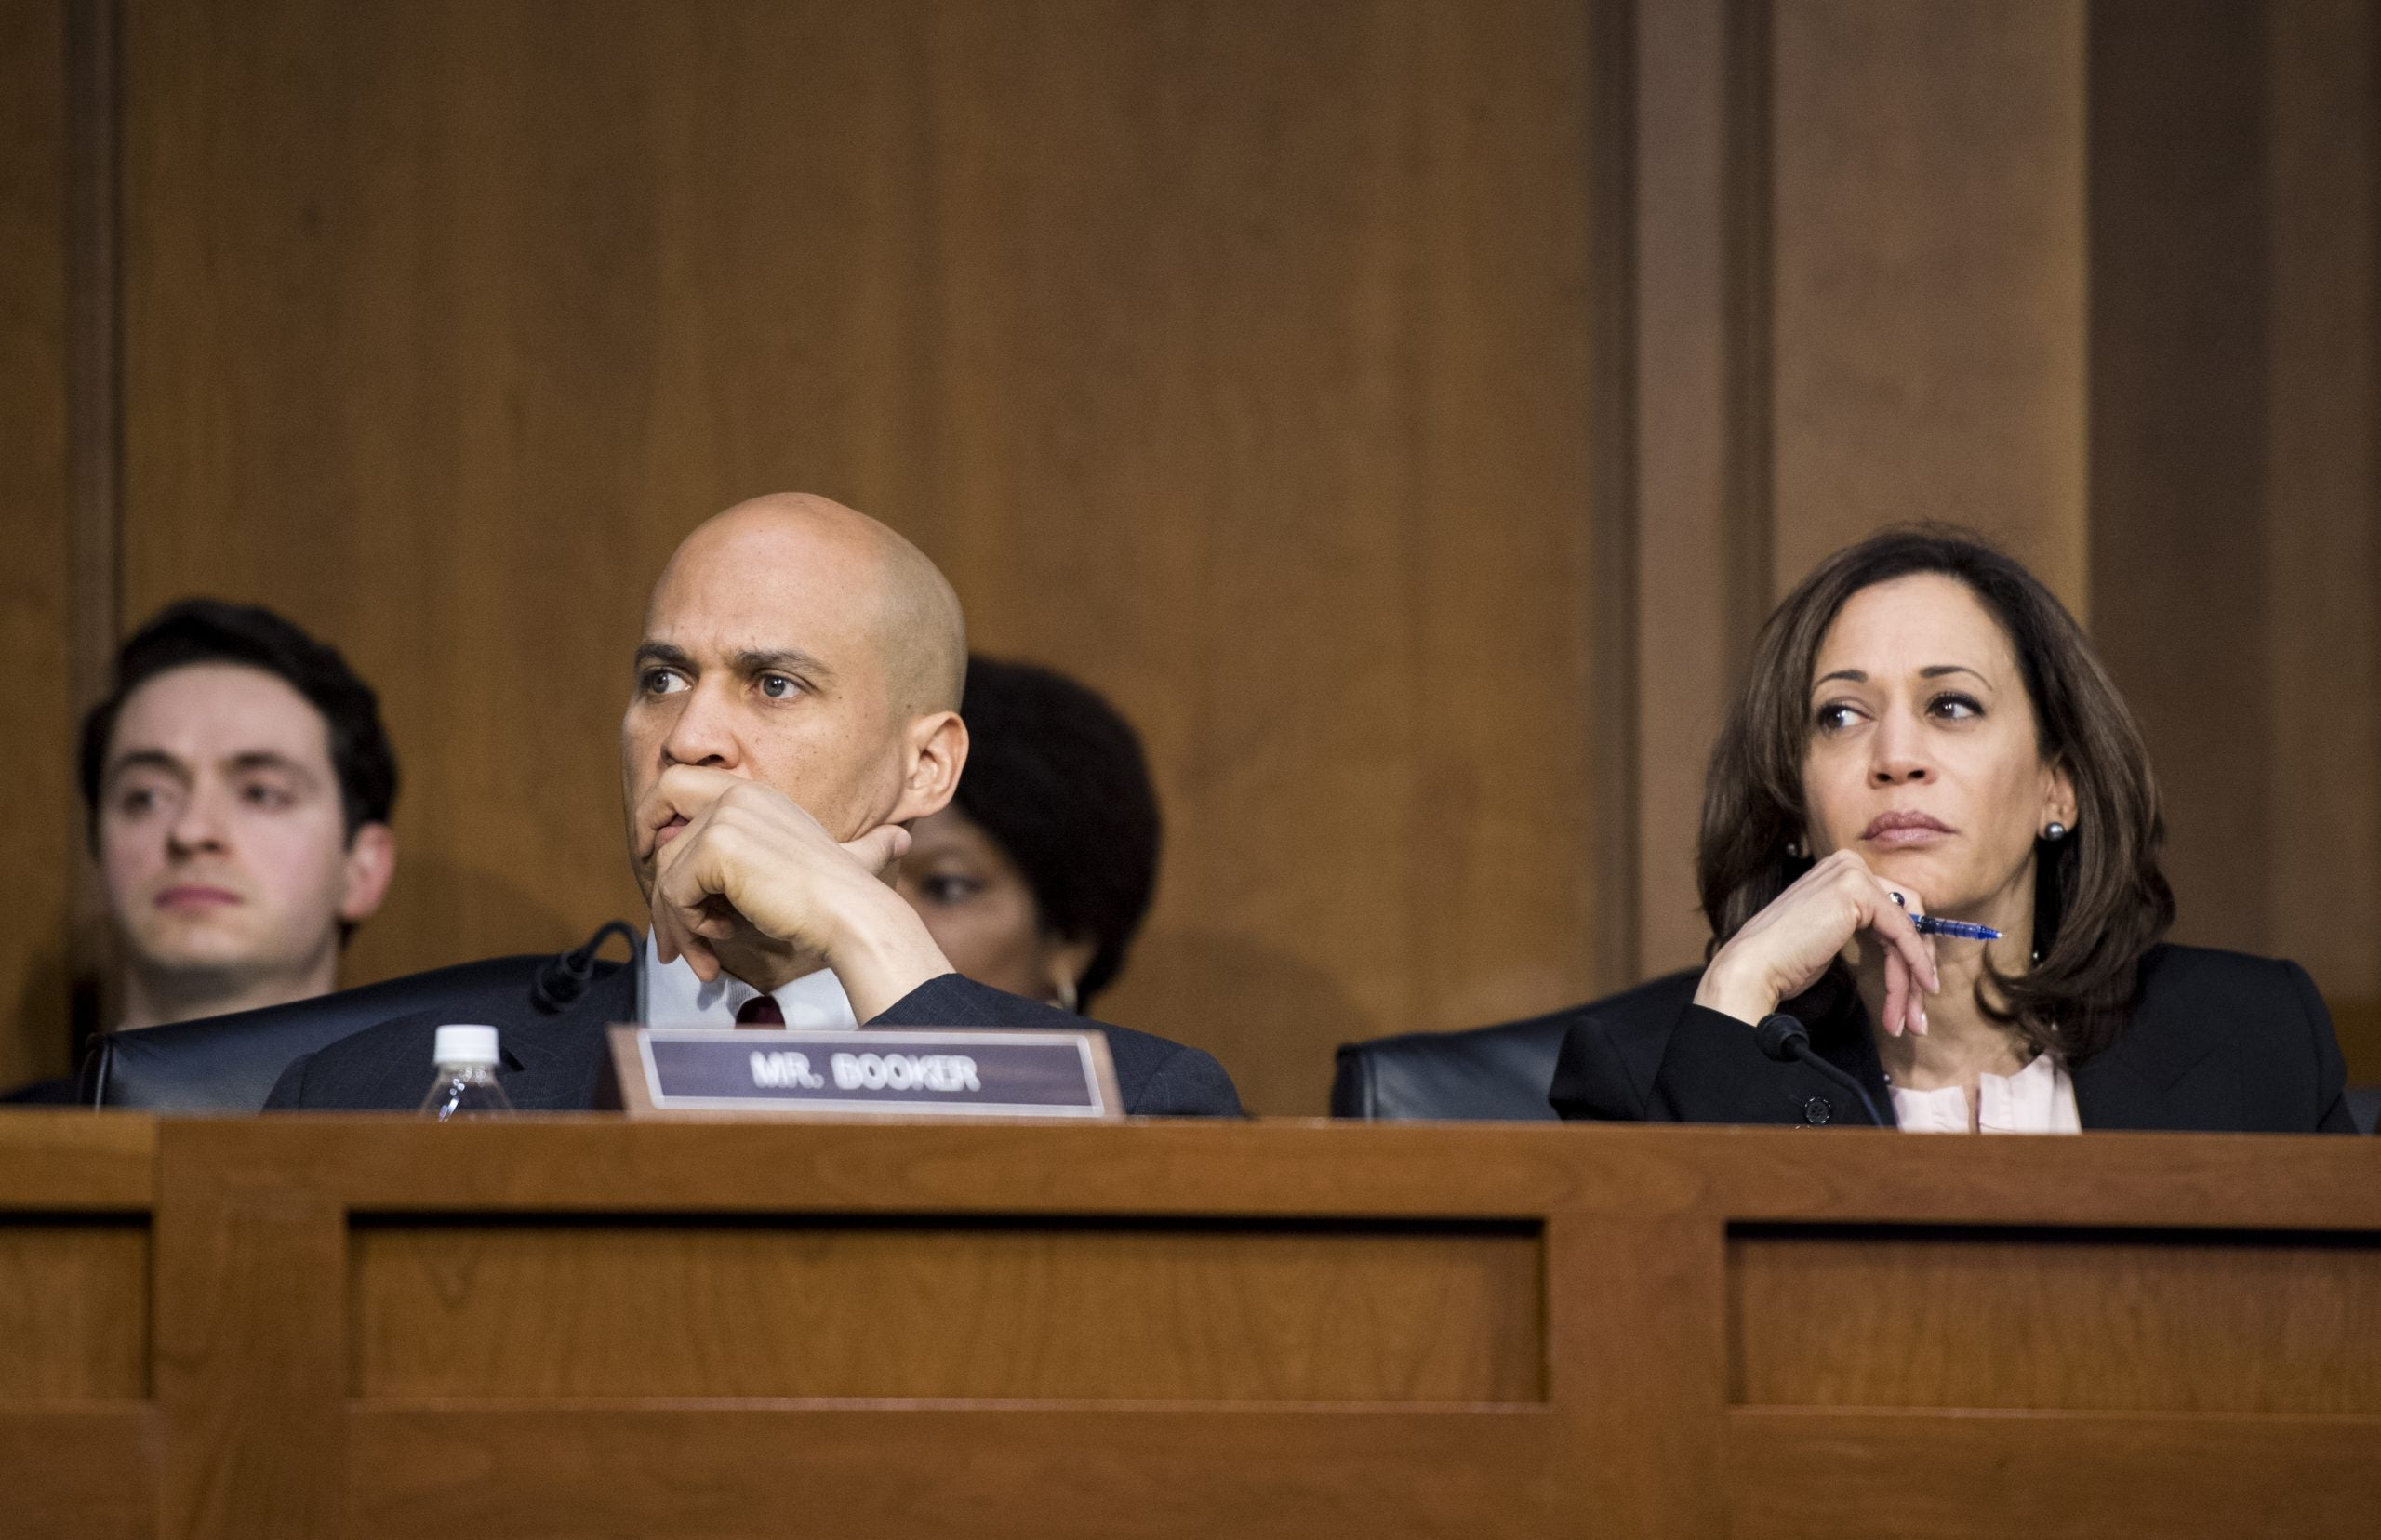 Sen. Cory Booker, D-N.J., and Sen. Kamala Harris, D-Calif., at the confirmation hearing of AG Barr